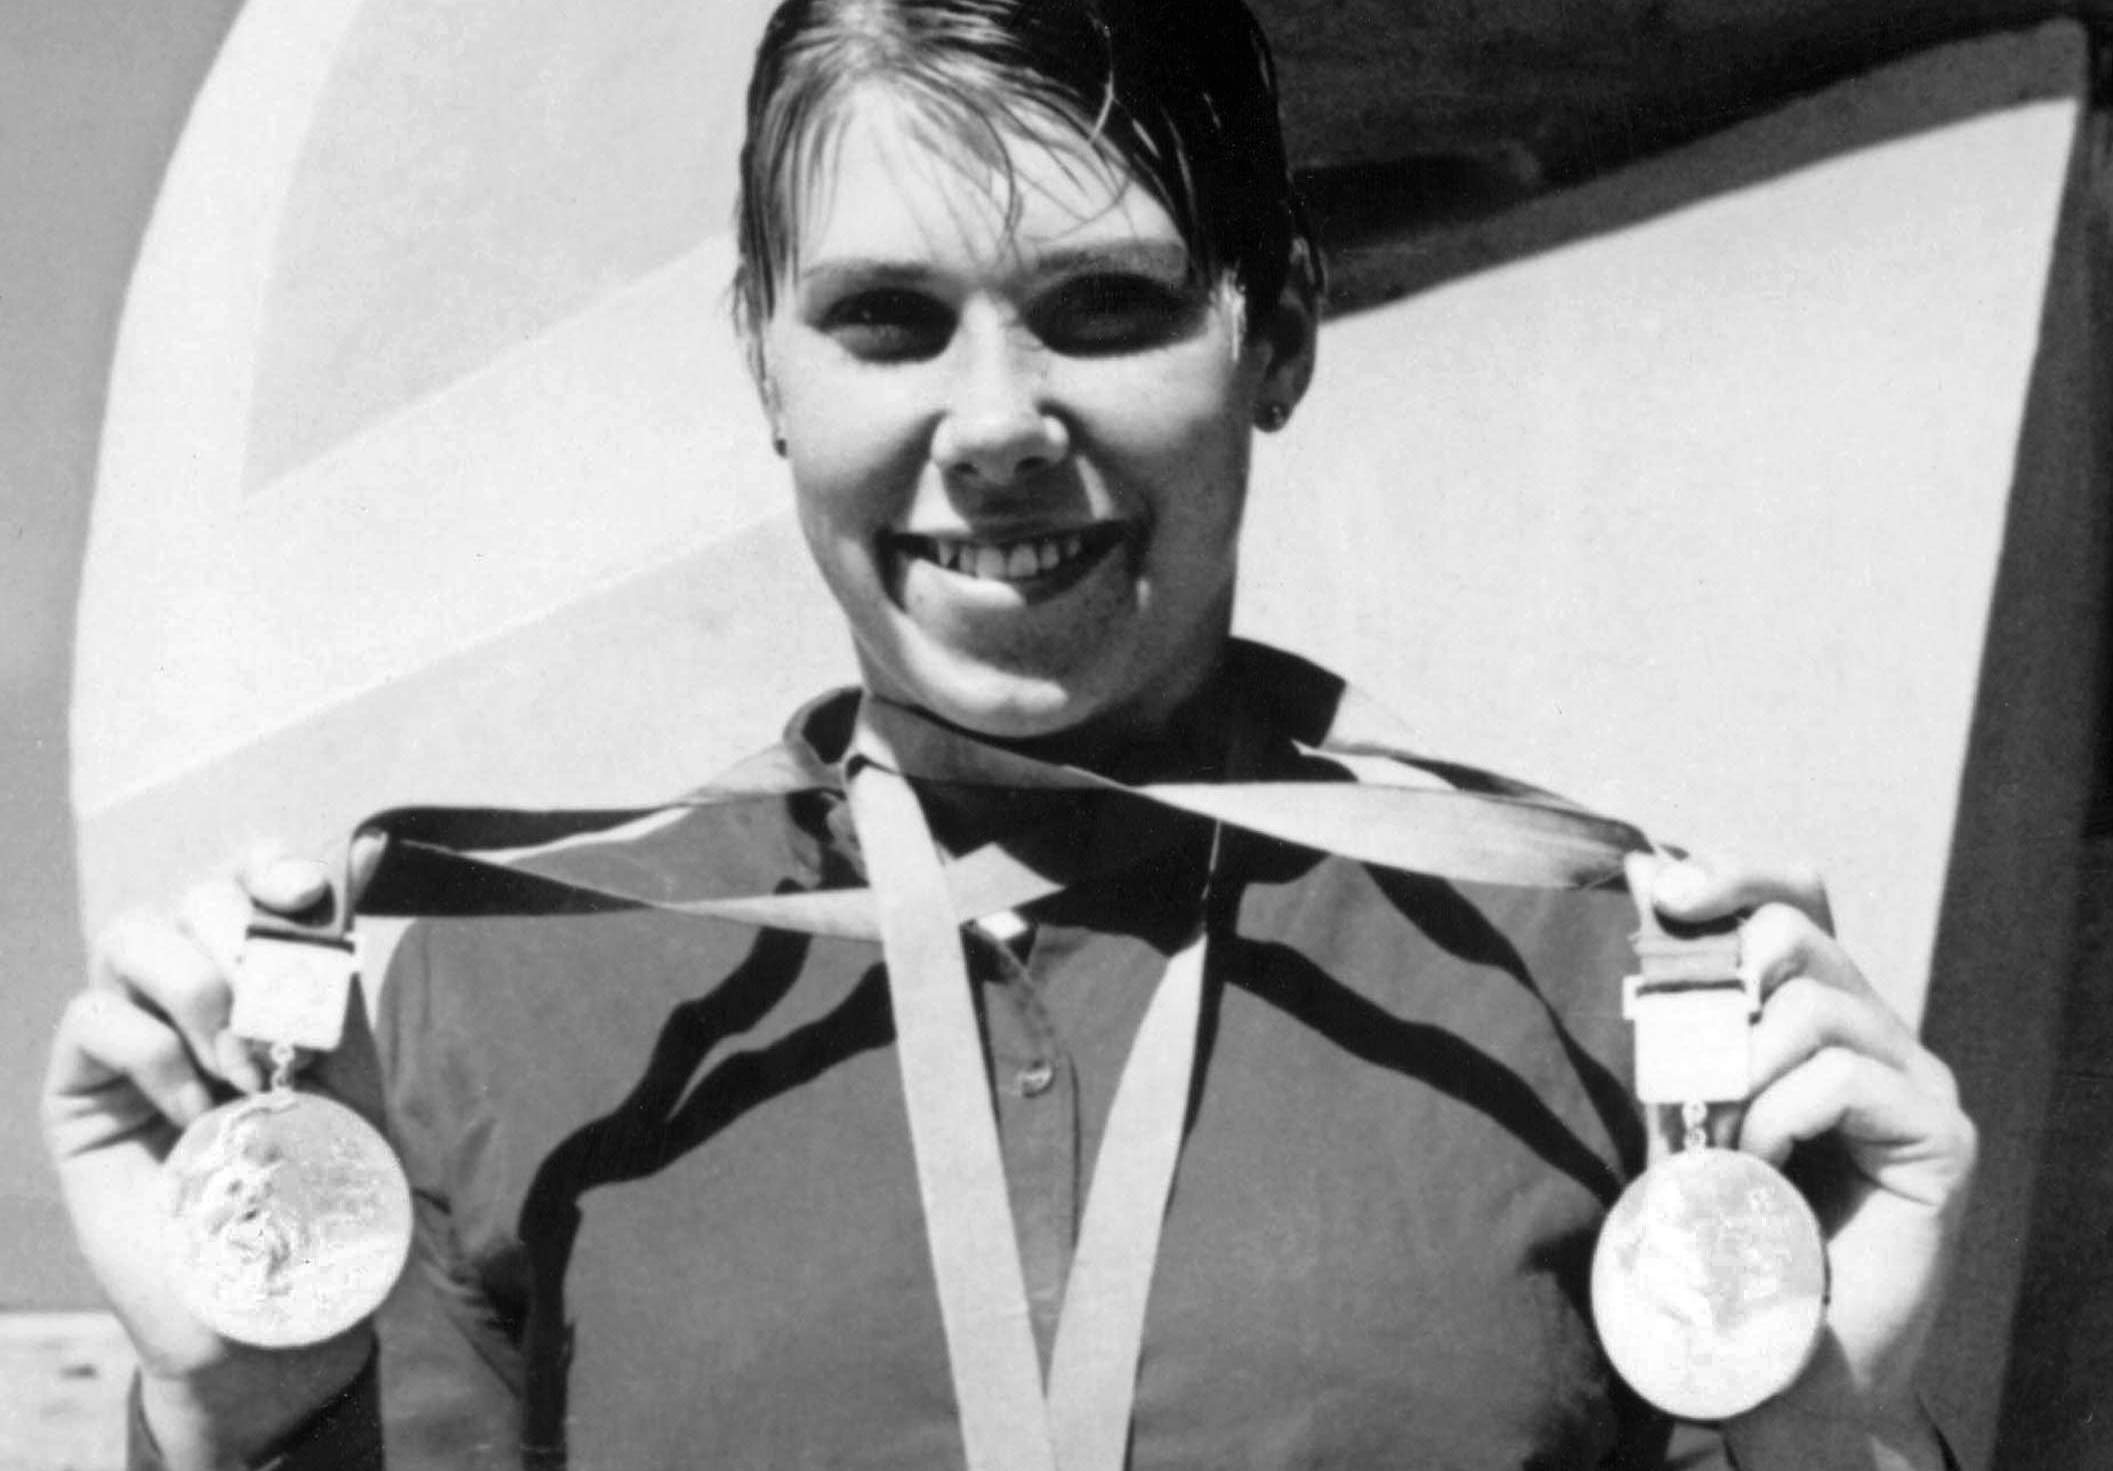 Elaine Tanner winner of two medals in the Women's swimming event at the 1968 Olympic Games in Mexico City, Mexico. (CP PHOTO/COC)